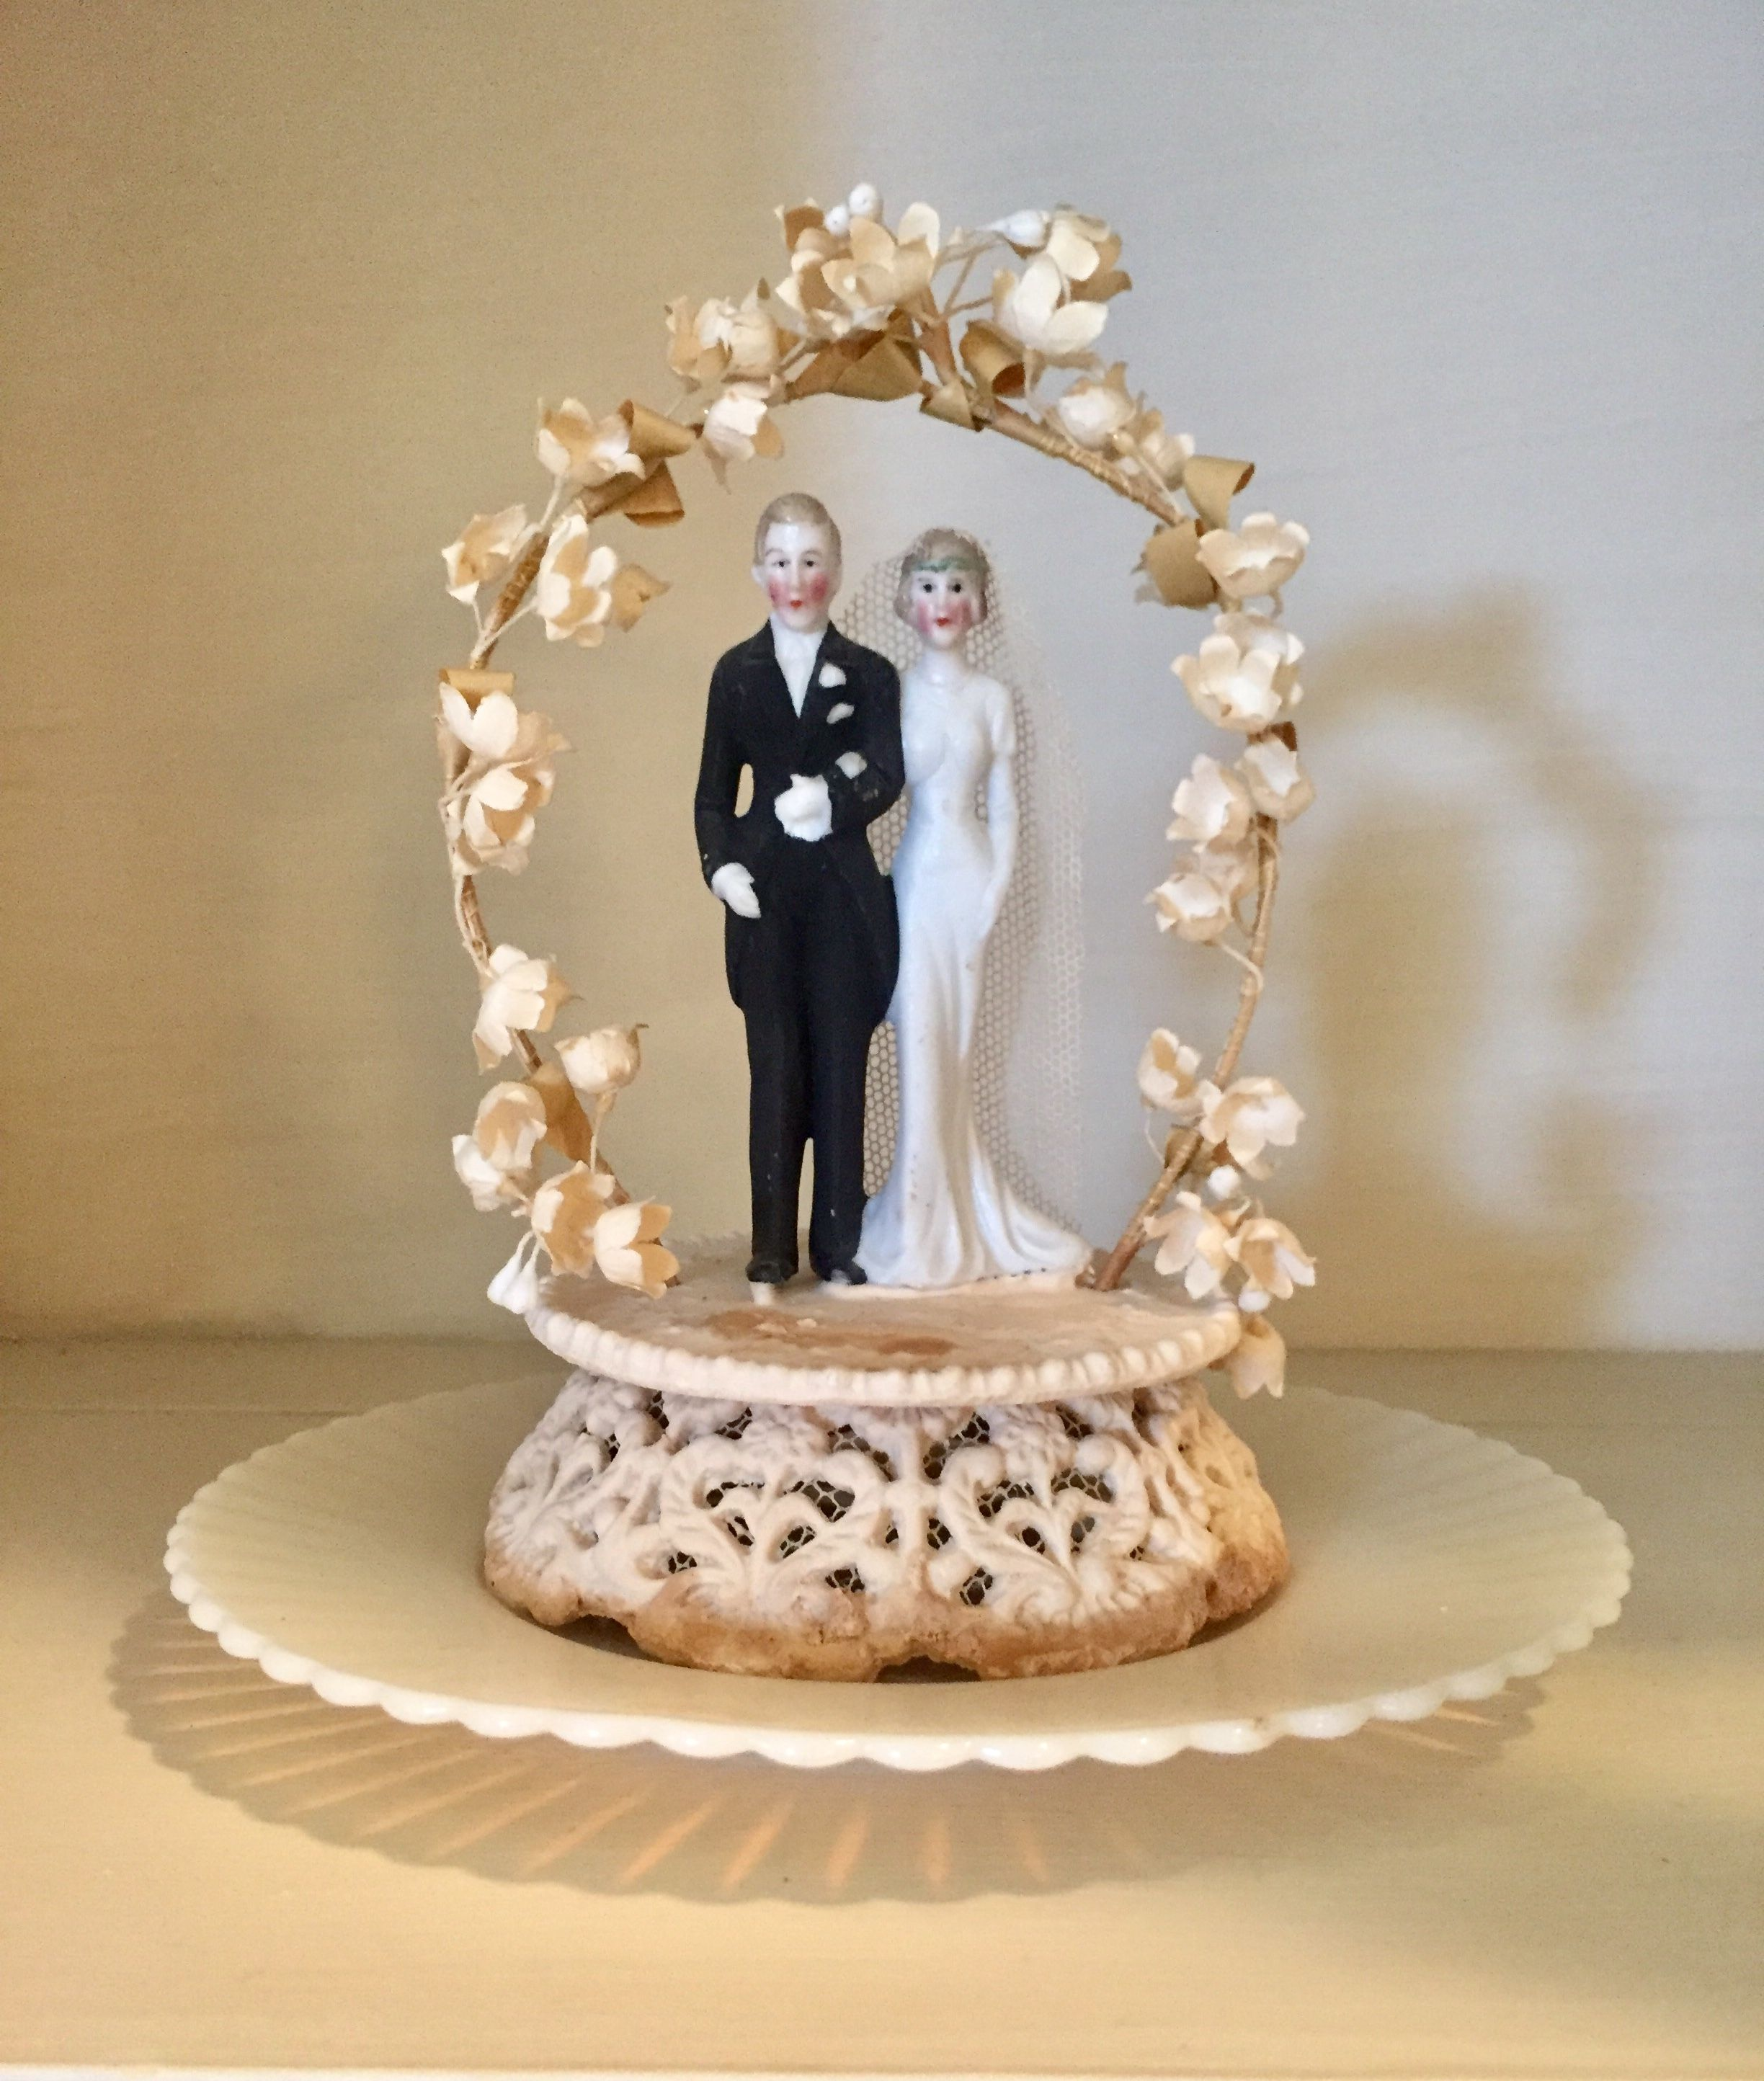 My Parents Wedding Cake Topper From 1937 Bridal Cake Topper Vintage Cake Toppers Wedding Cake Toppers